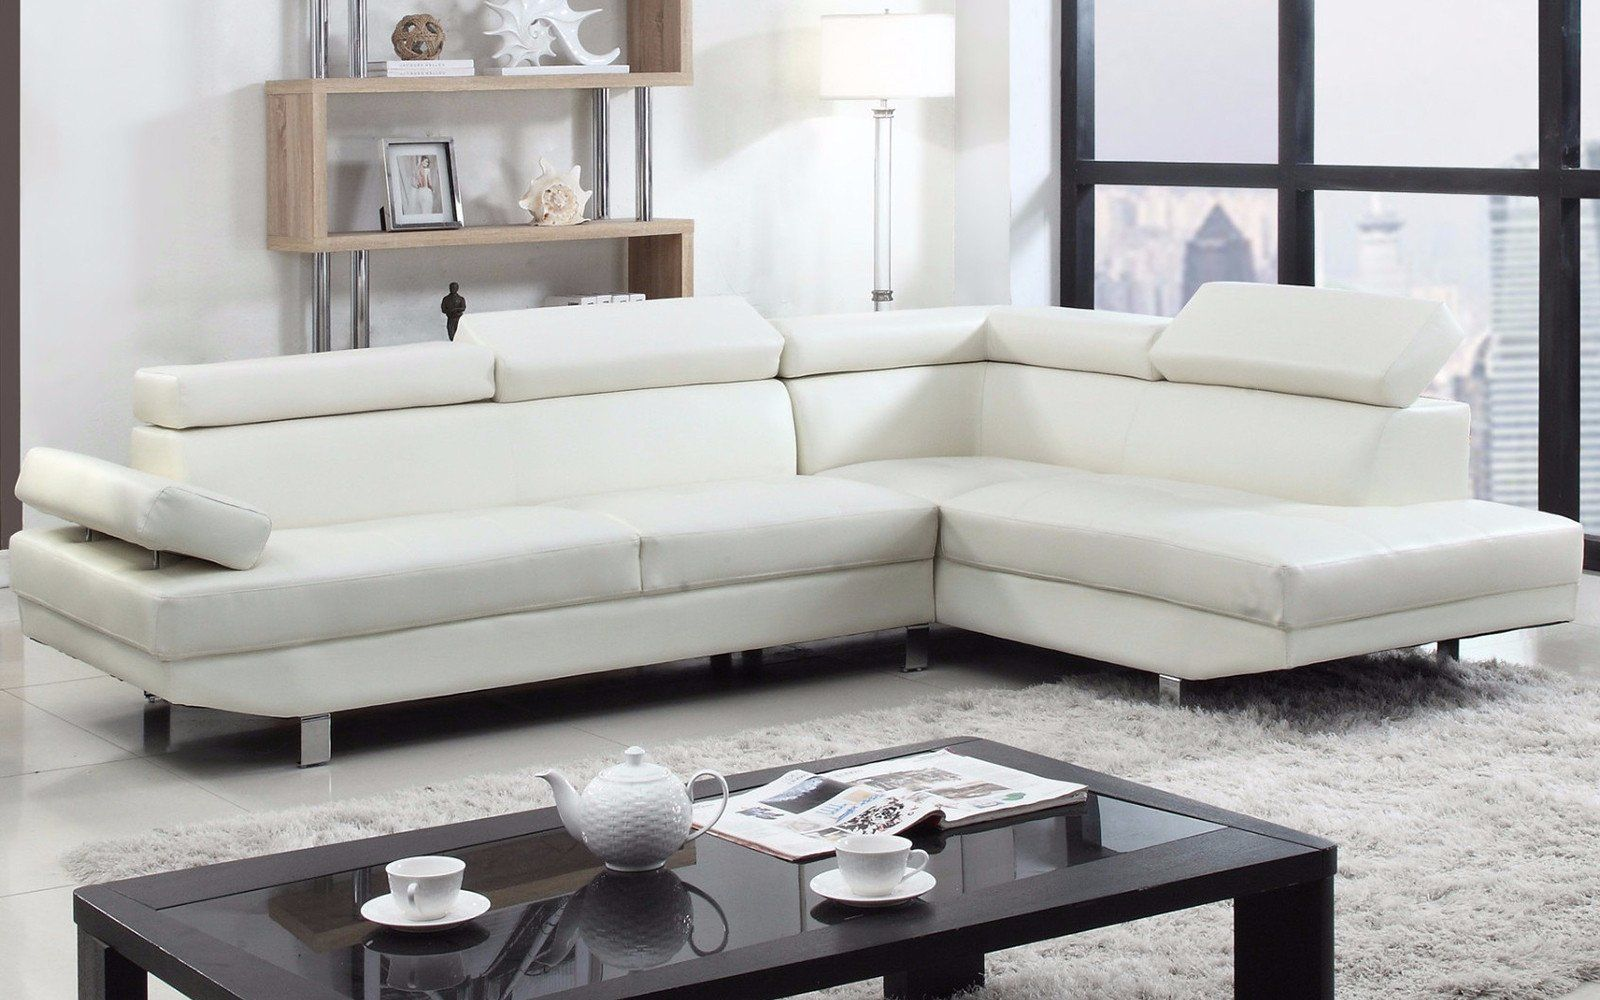 Albert Modern Bonded Leather Sectional With Right Chaise White Sectional Sofa Sectional Sofa Leather Sectional Sofas